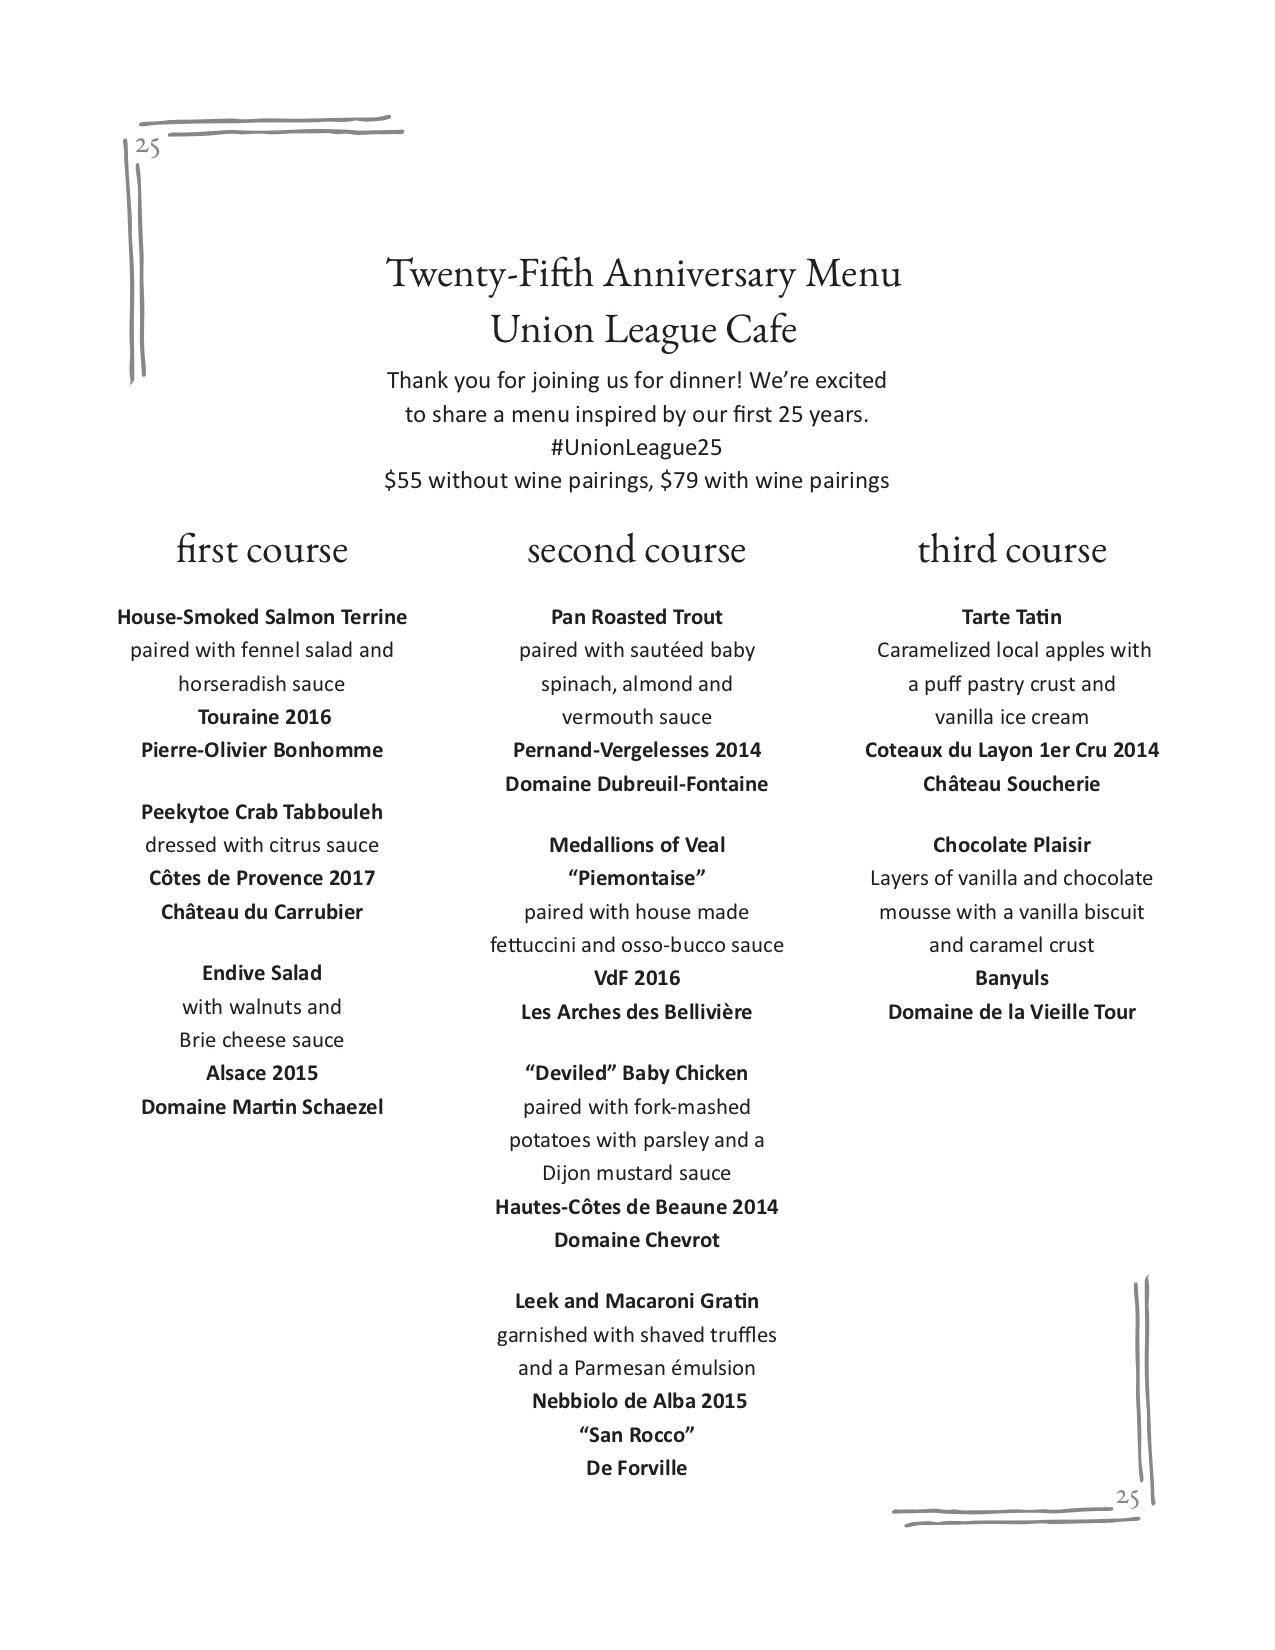 Union League Cafe 25th Anniversary Menu